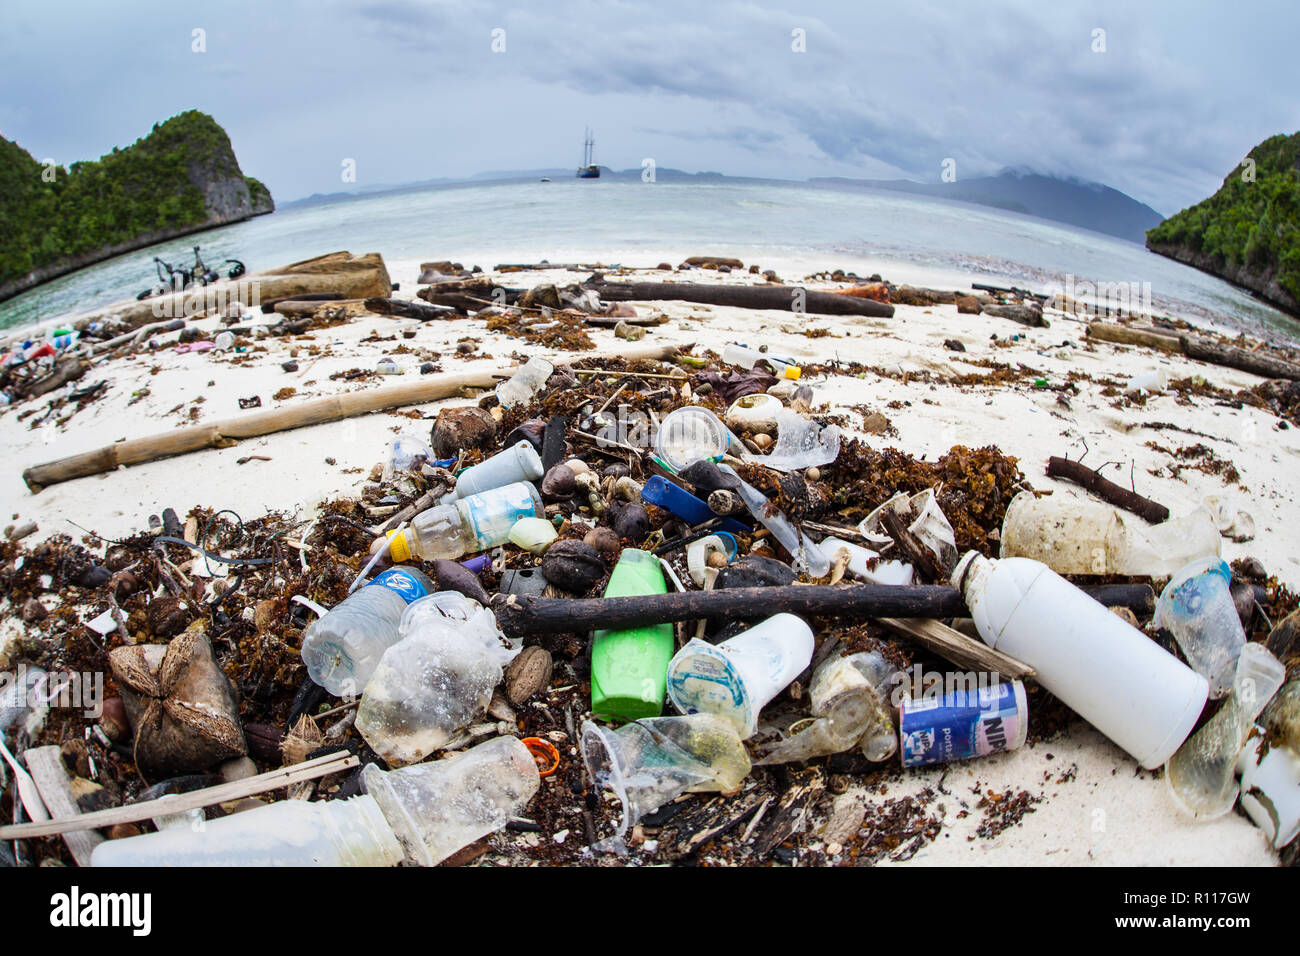 Discarded plastic bottles have washed up on a remote beach in Raja Ampat, Indonesia. Plastics break down into tiny pieces and enter the food chain. - Stock Image